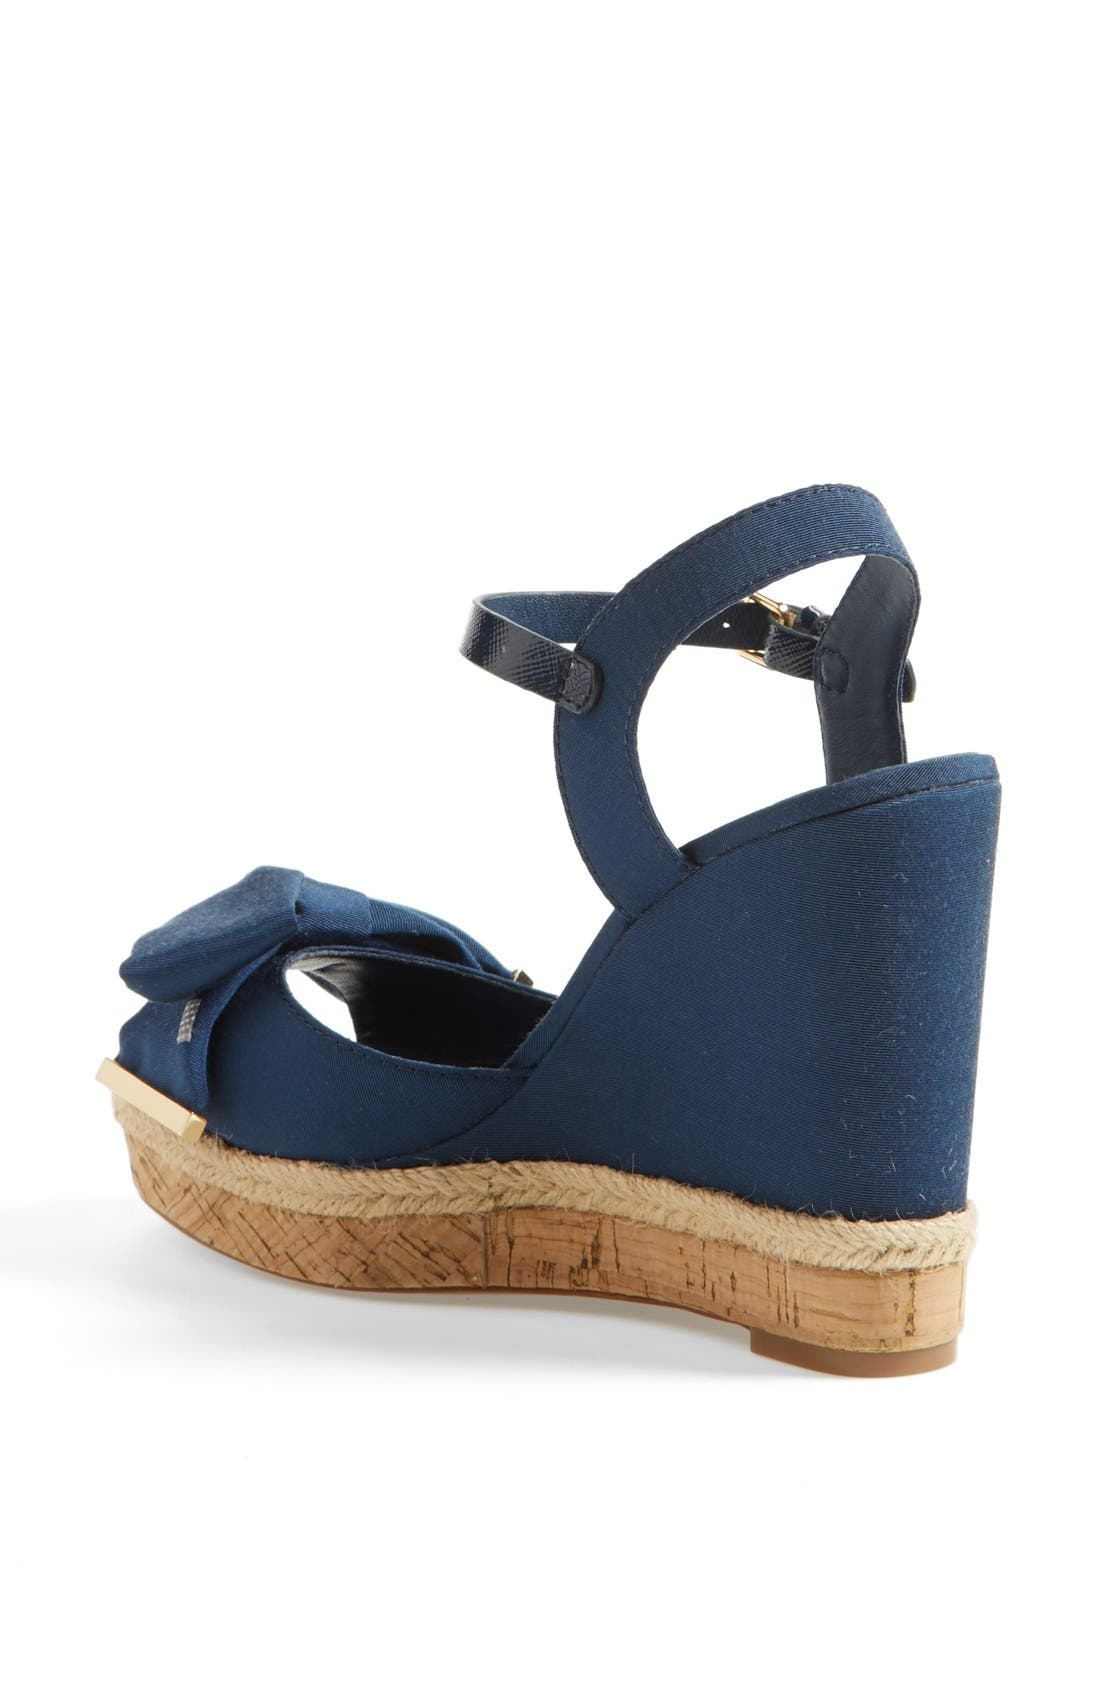 Alternate Image 2  - Tory Burch 'Penny' Wedge Sandal